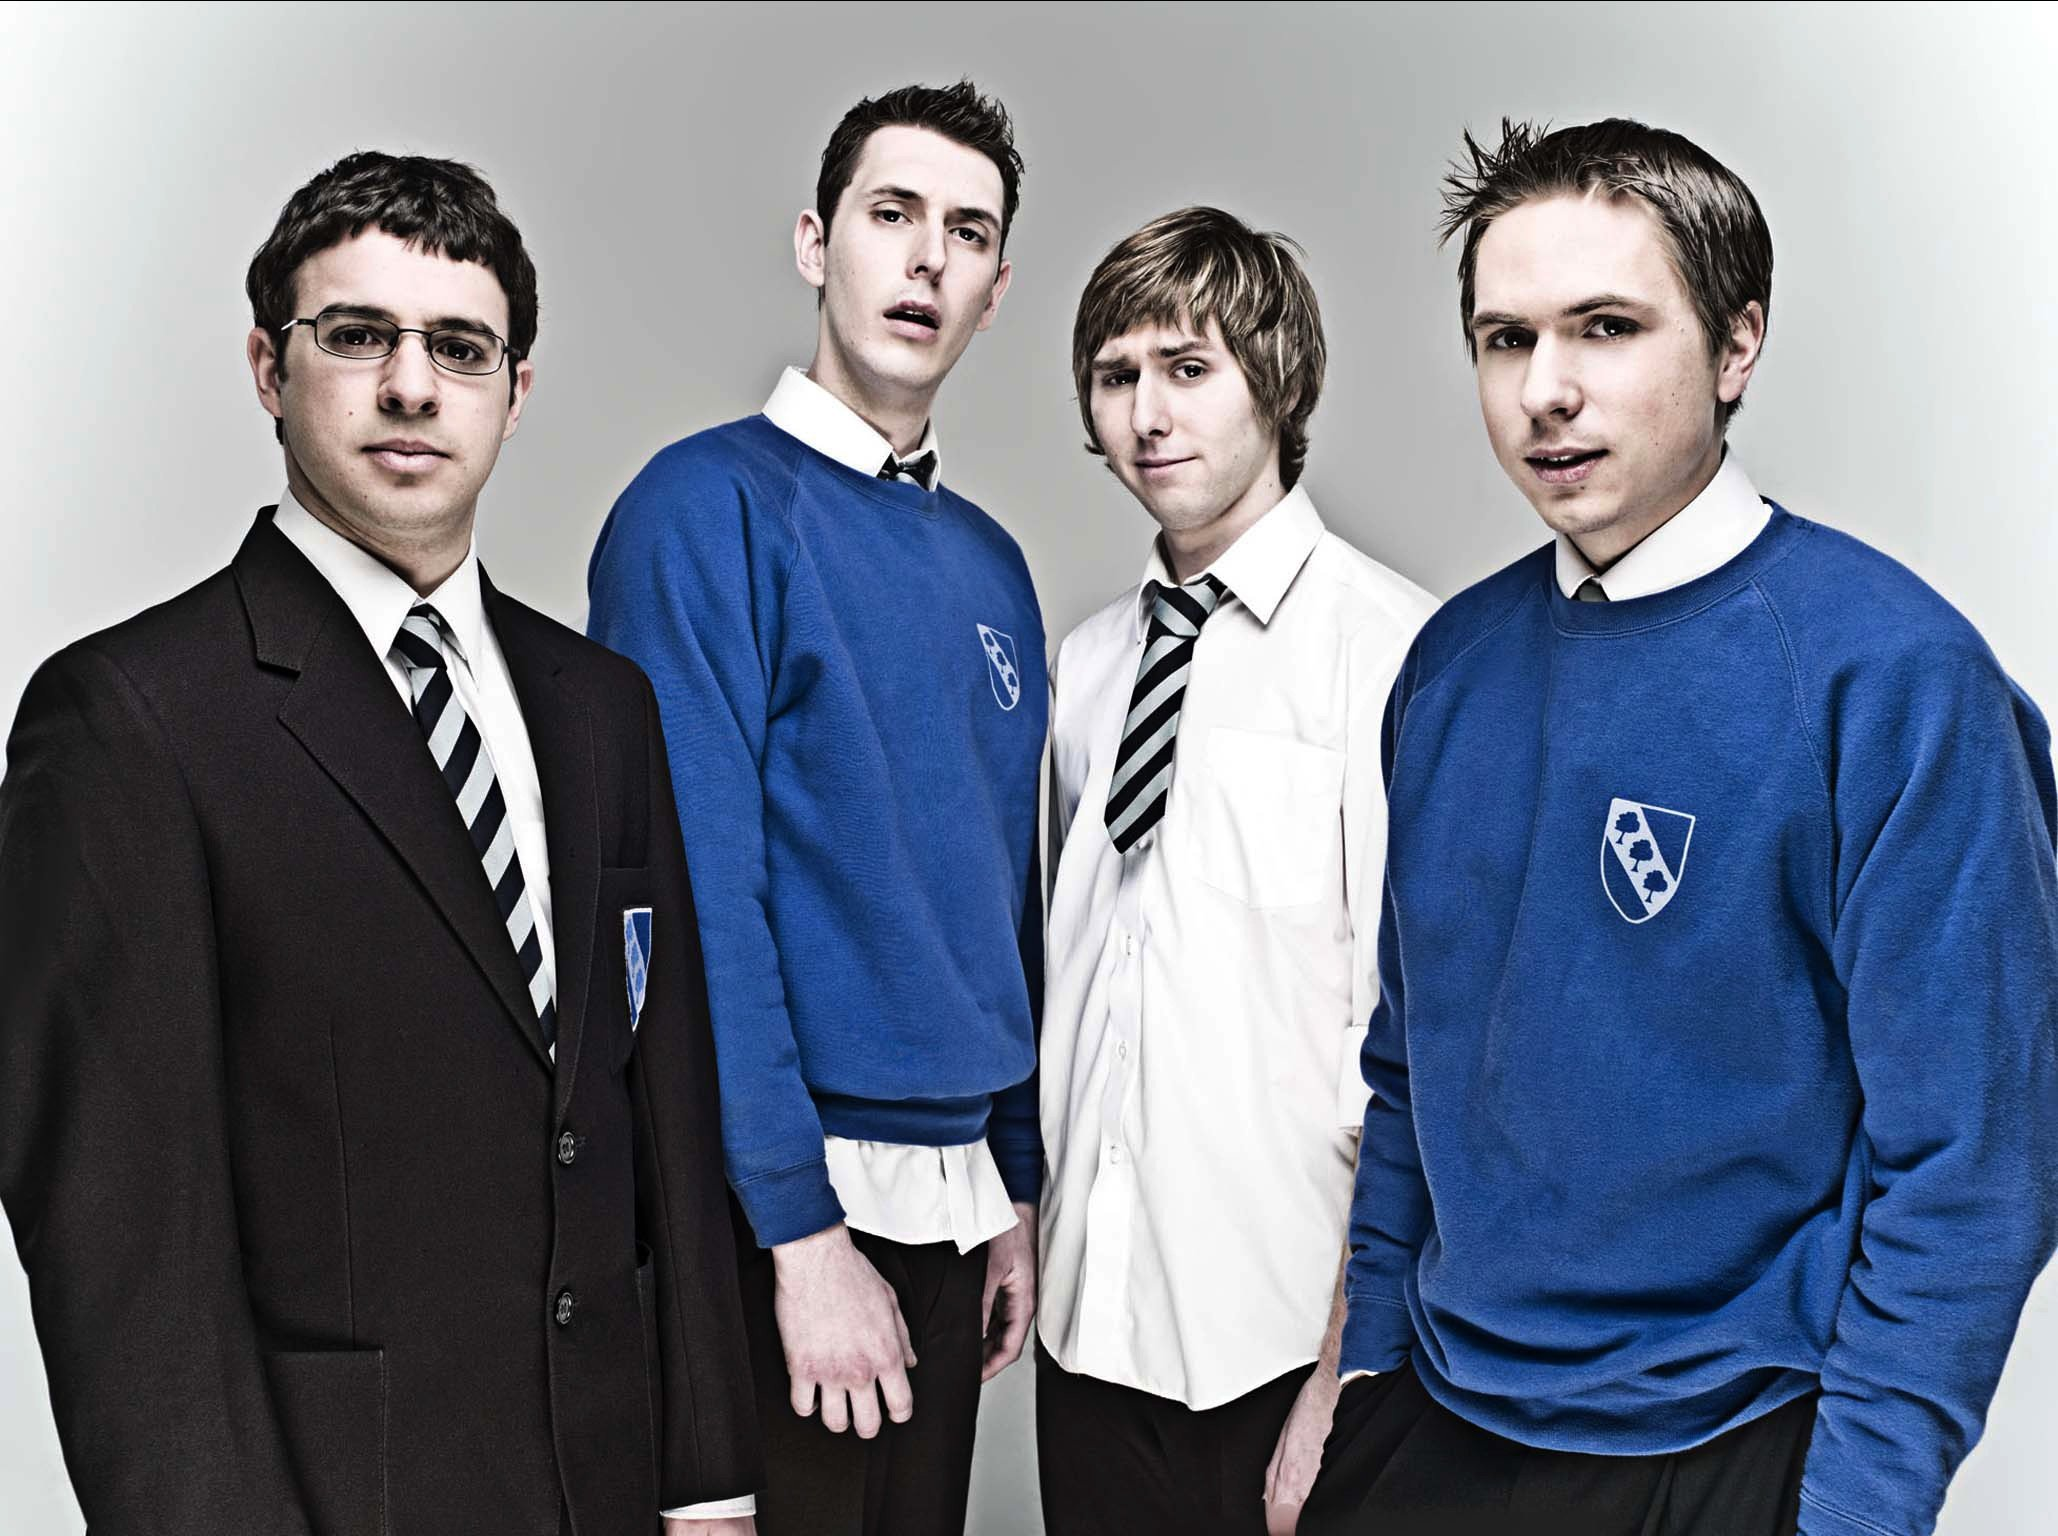 Is there going to be another series of The Inbetweeners?